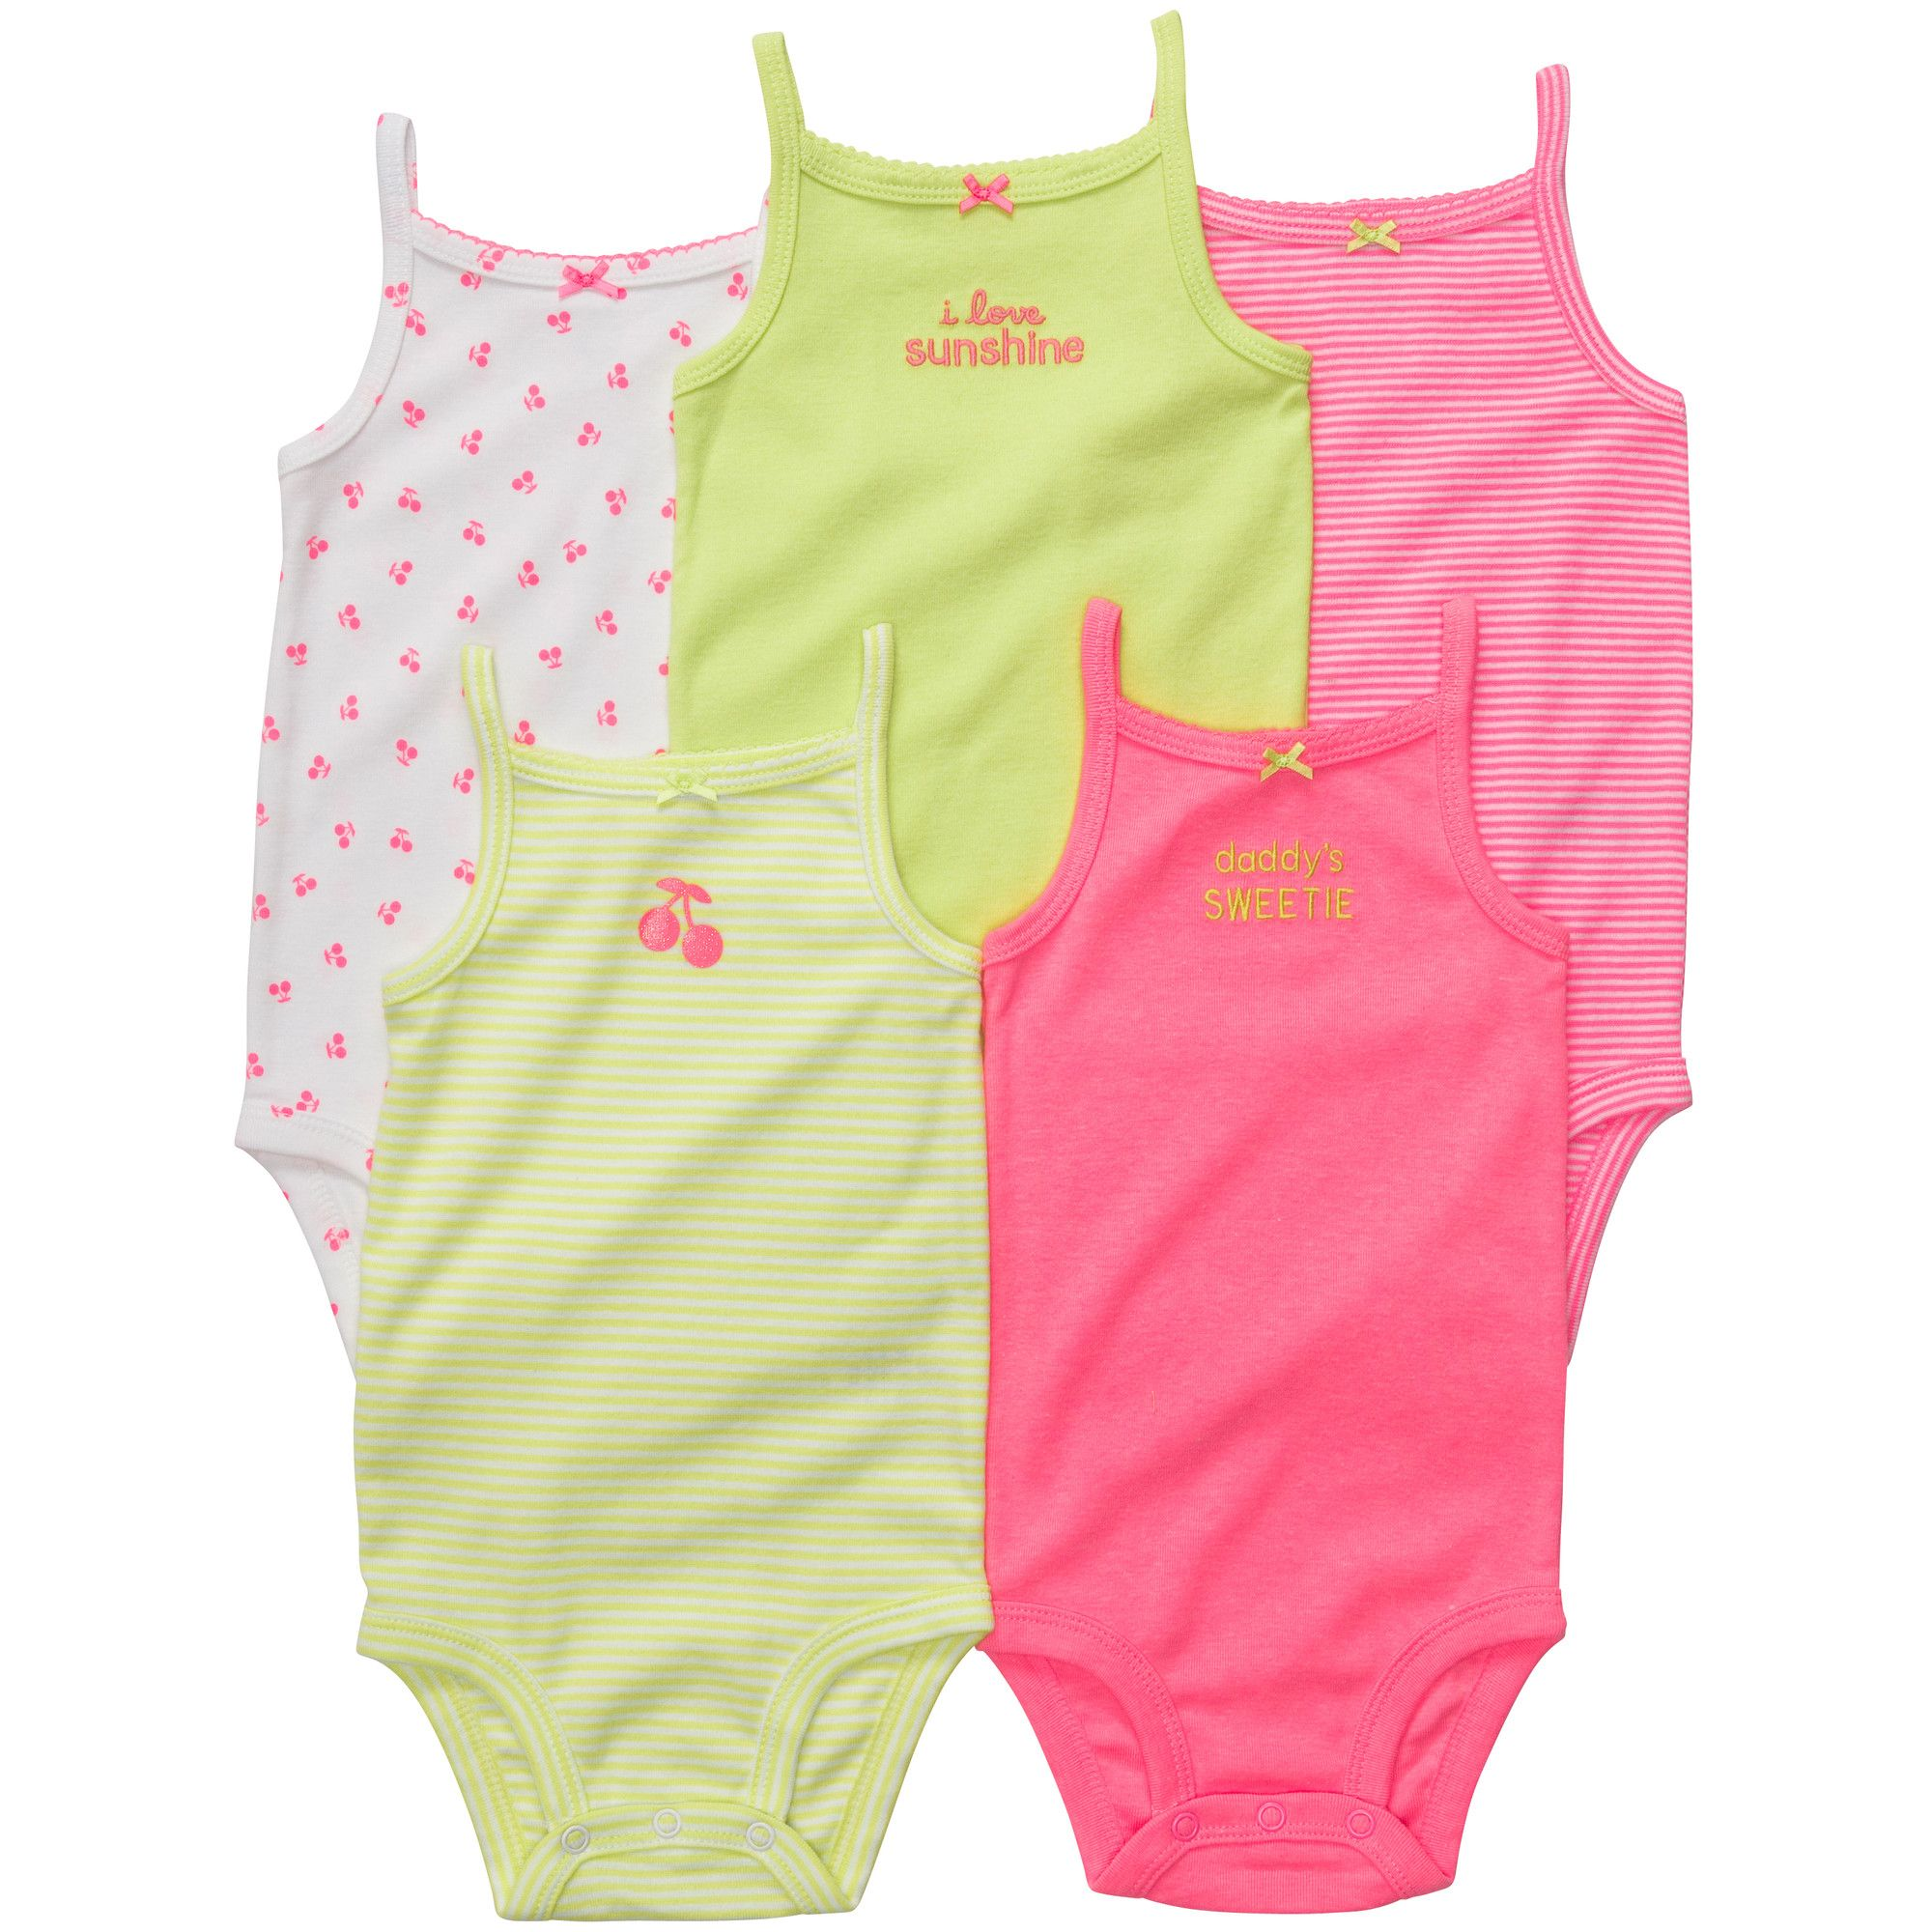 23690cf7908 Carters 5-pack Sleeveless Bodysuits